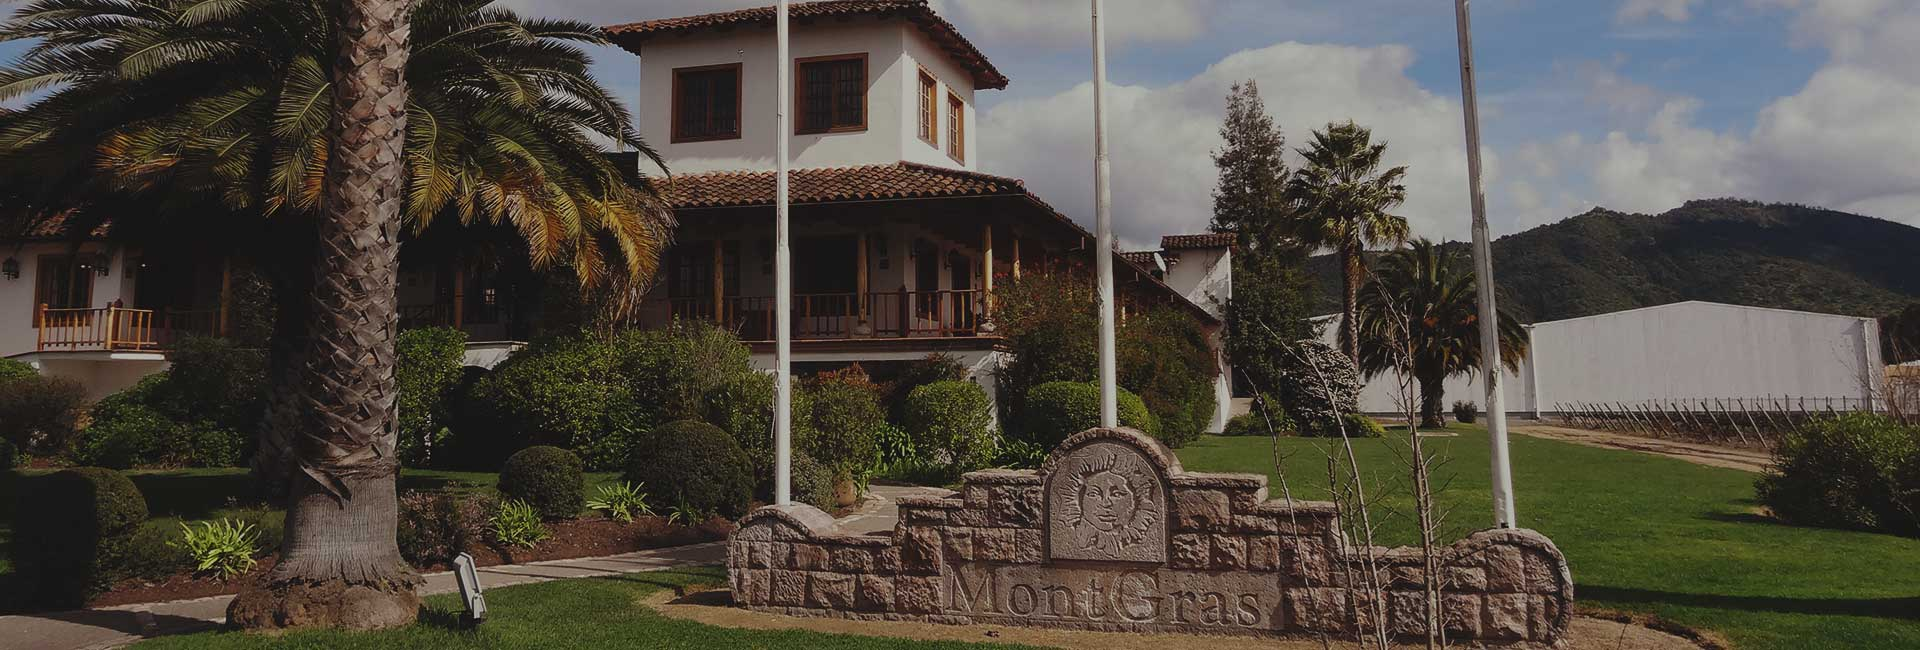 Montgras Winery Header